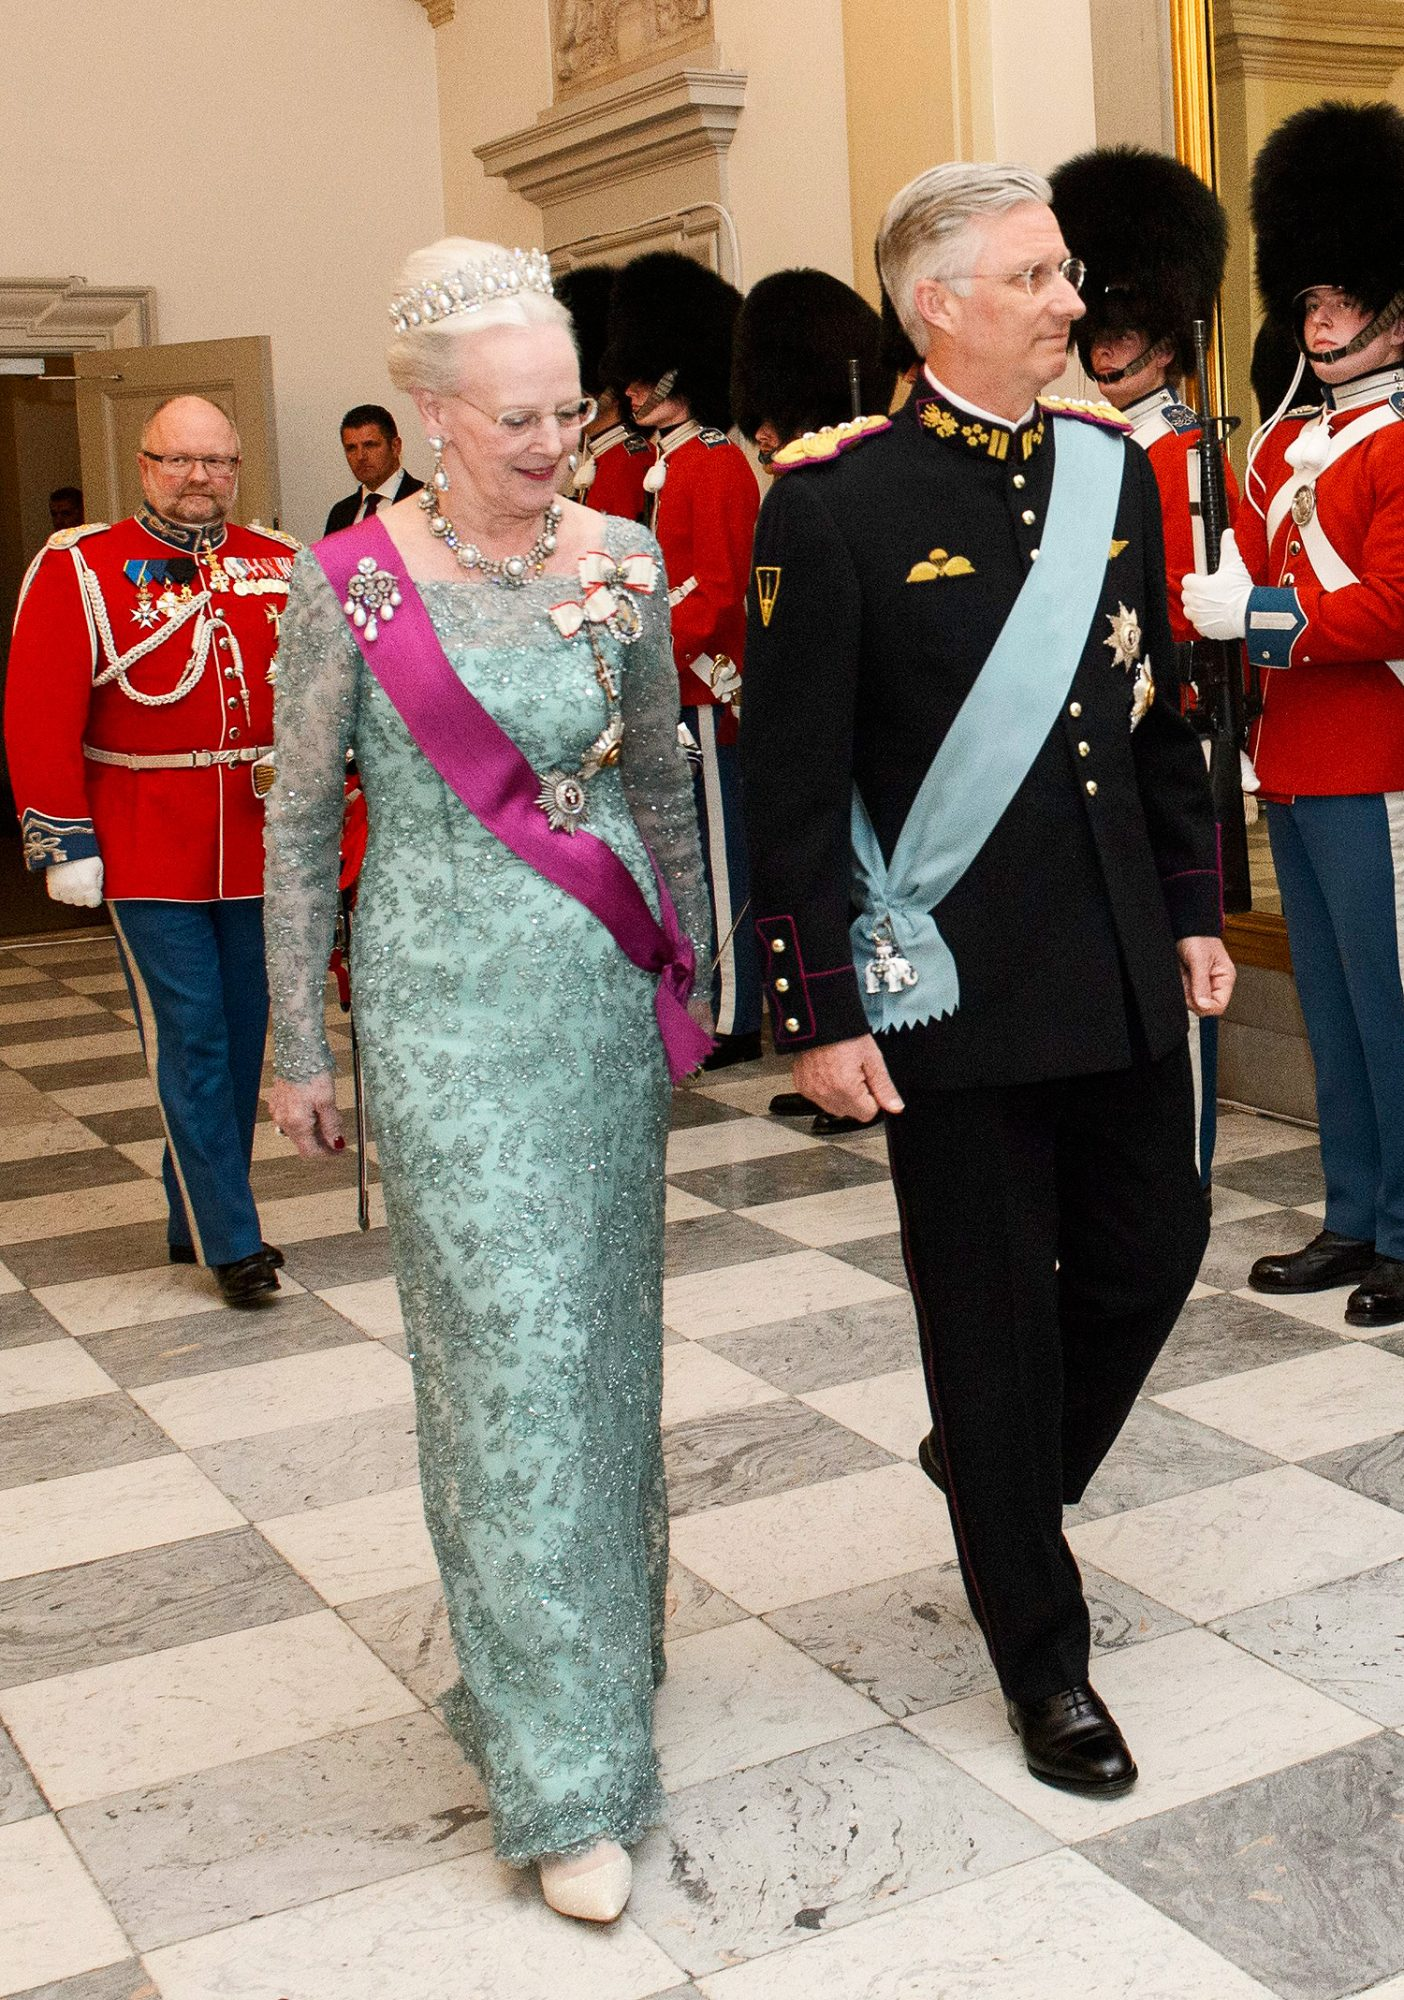 State visit of King Philippe and Queen Mathilde to Denmark